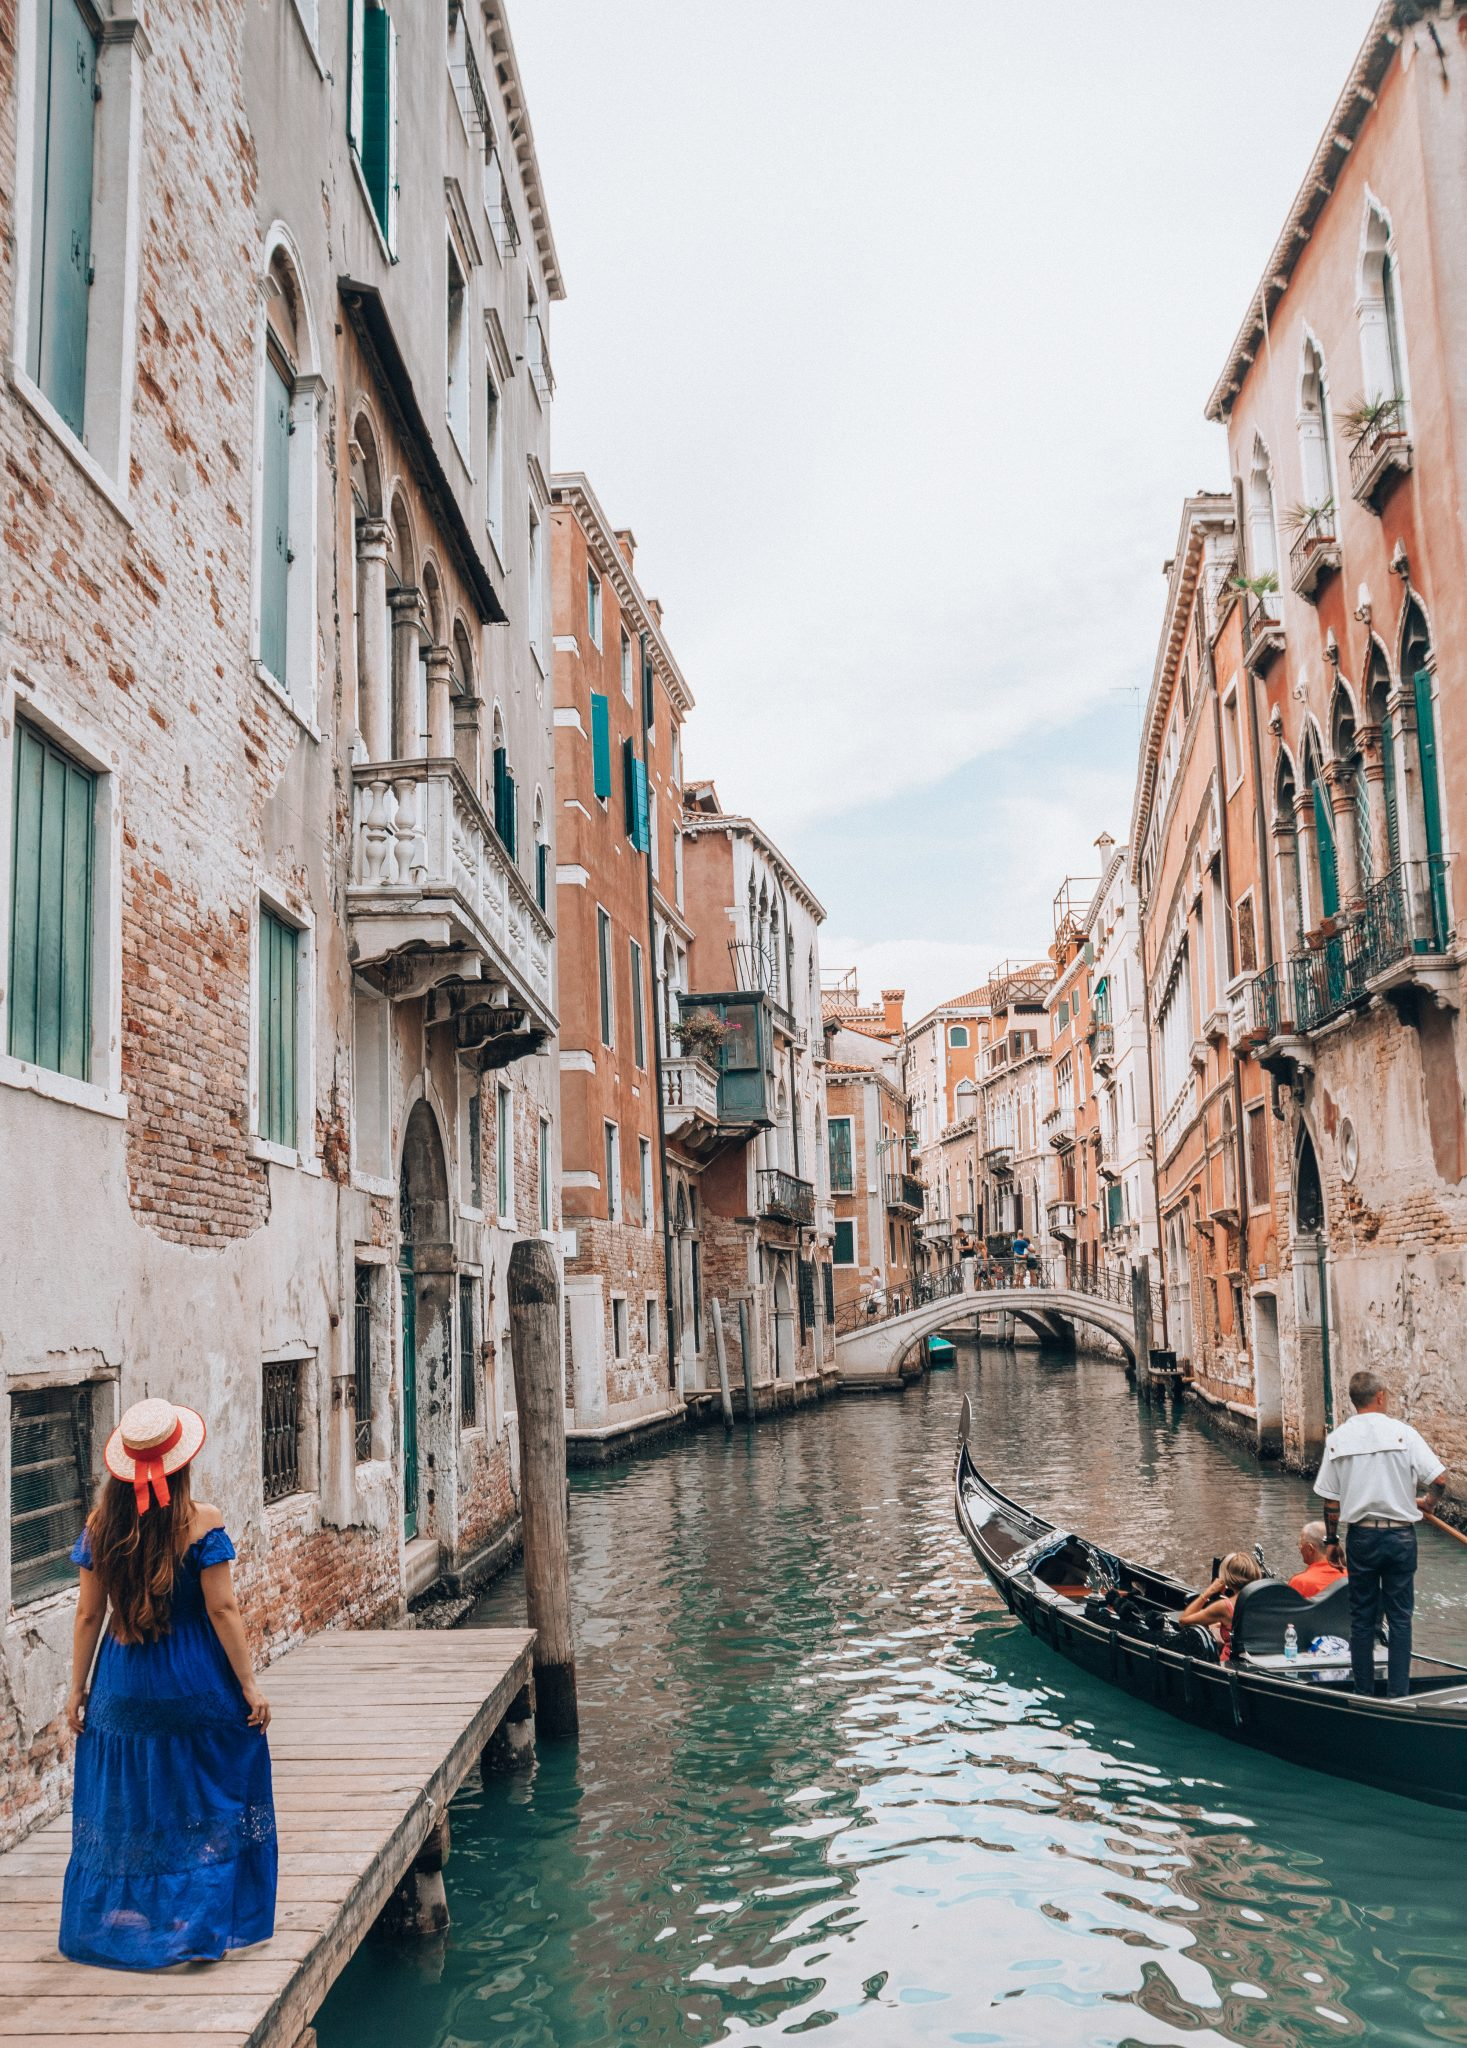 Most Instagrammable Places In Venice - Hotel San Moise